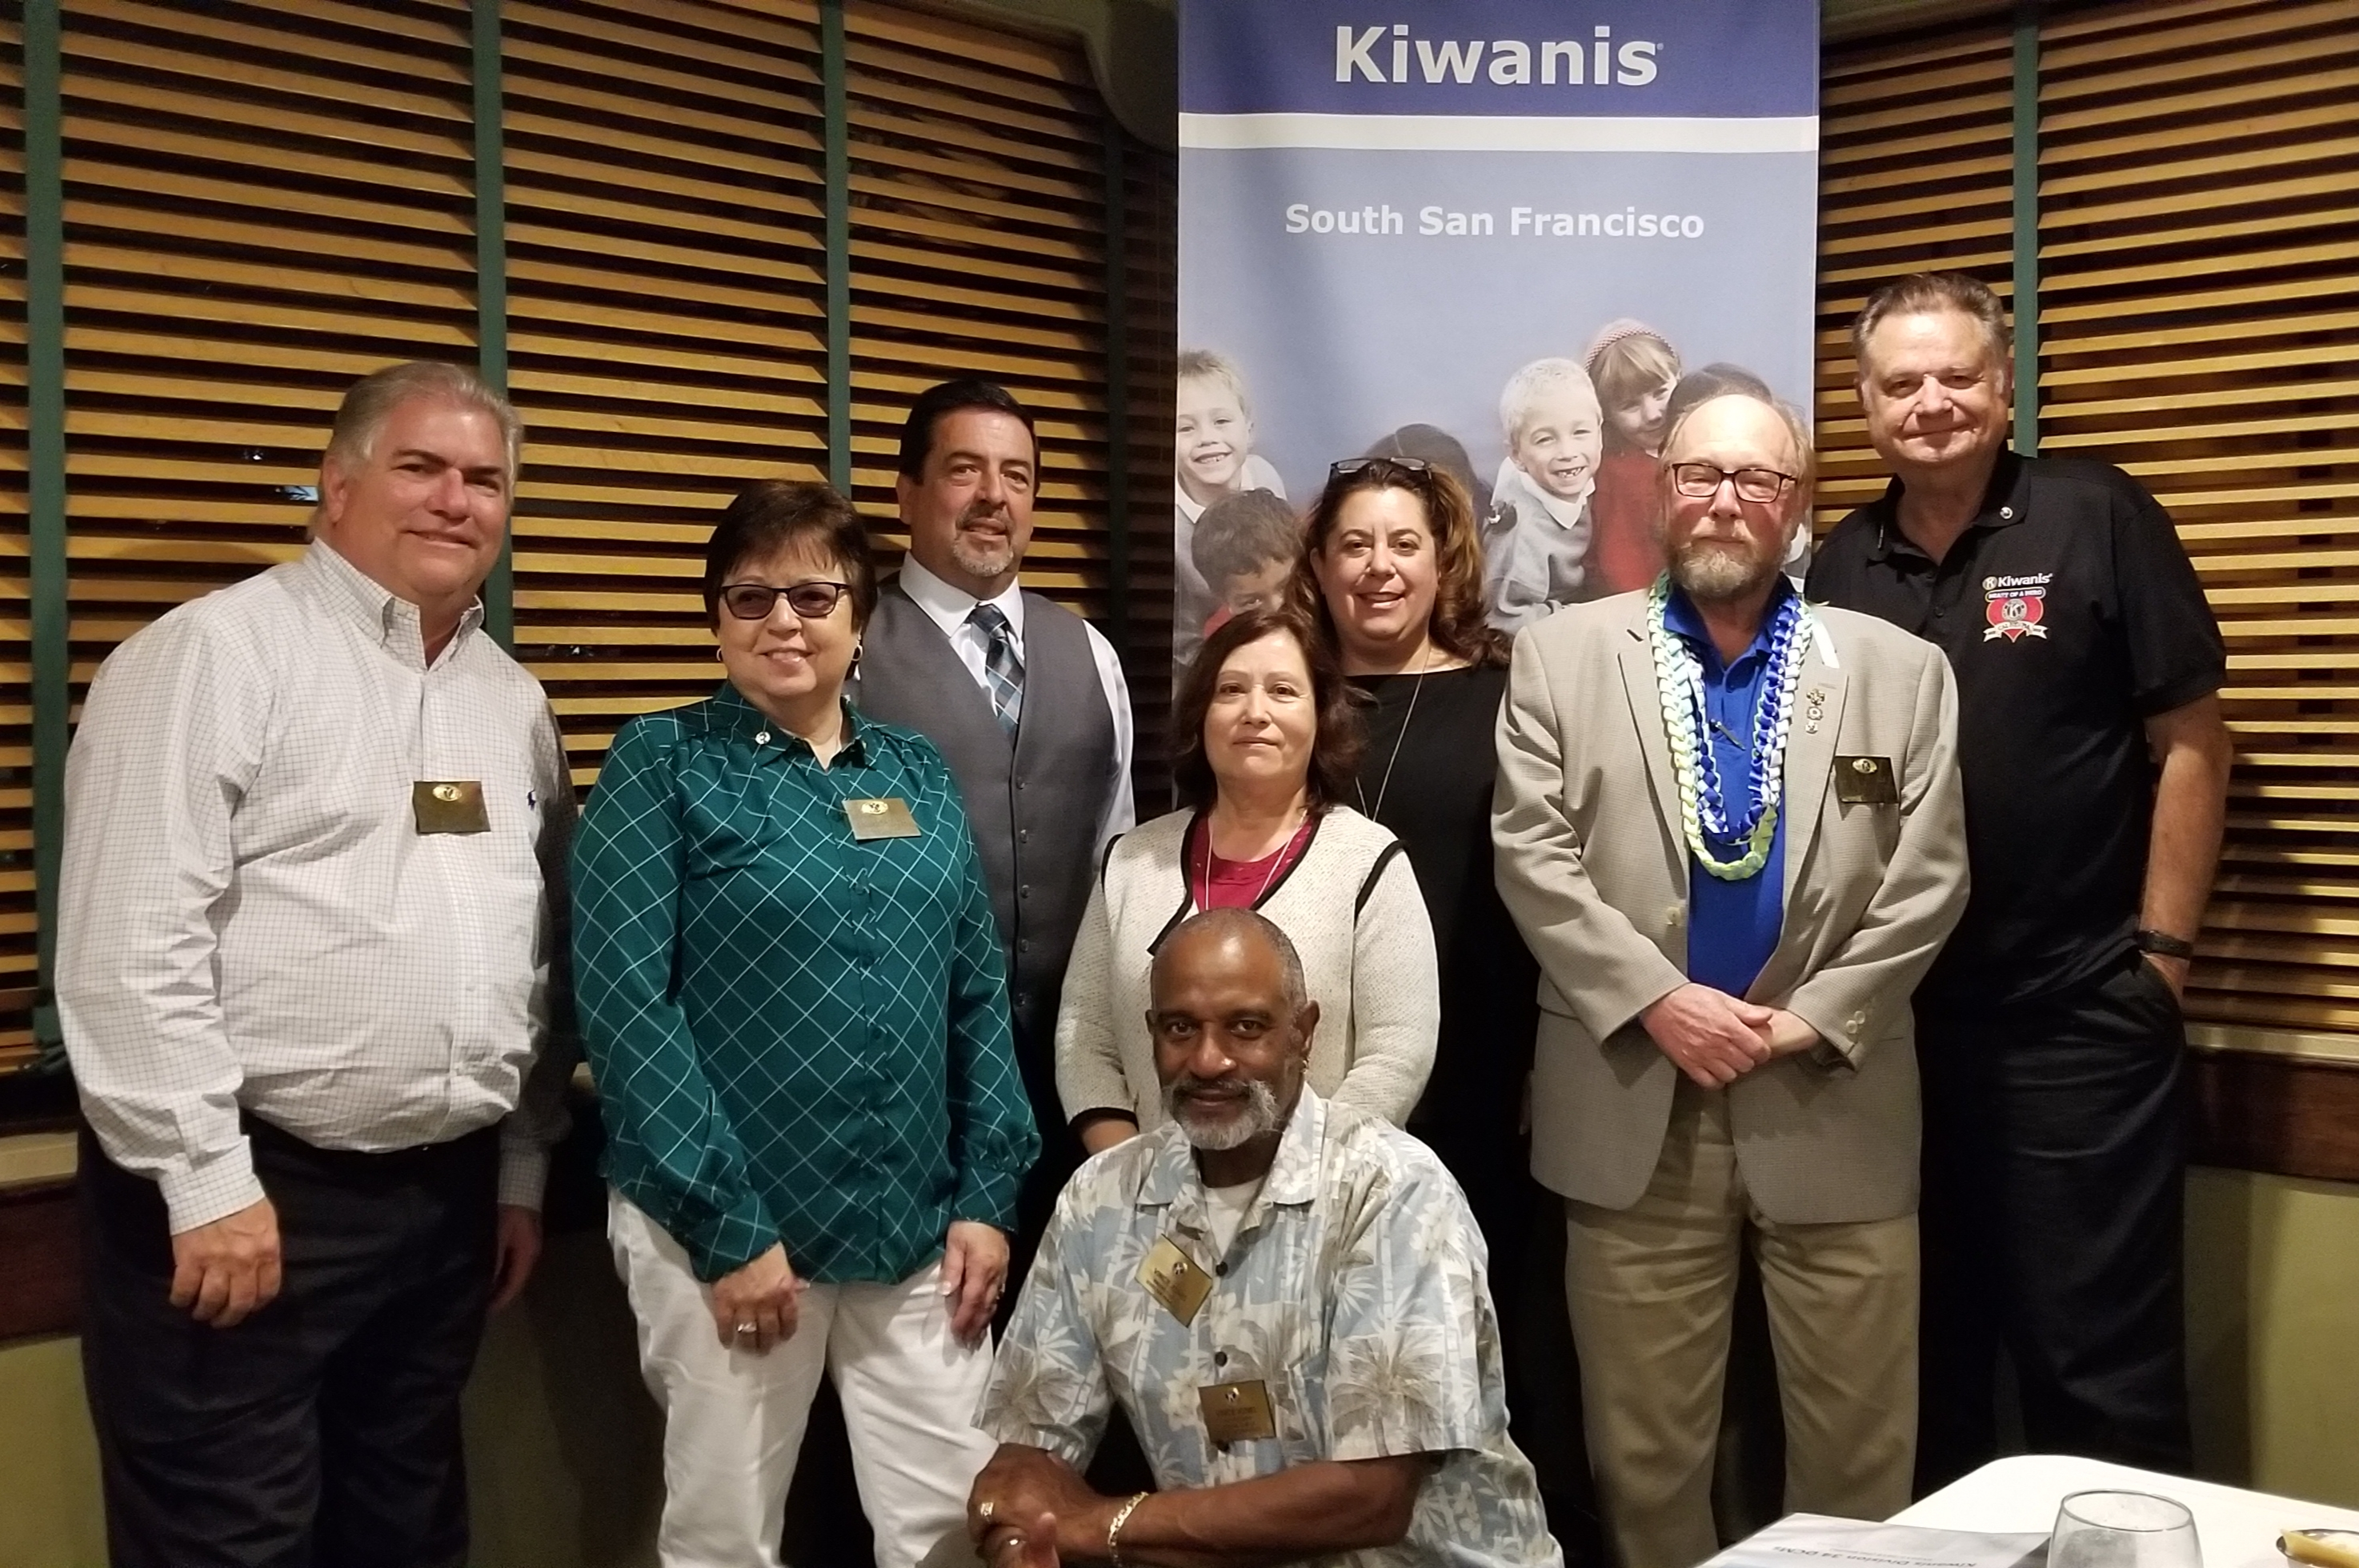 Kiwanis Club of South San Francisco installs new officers